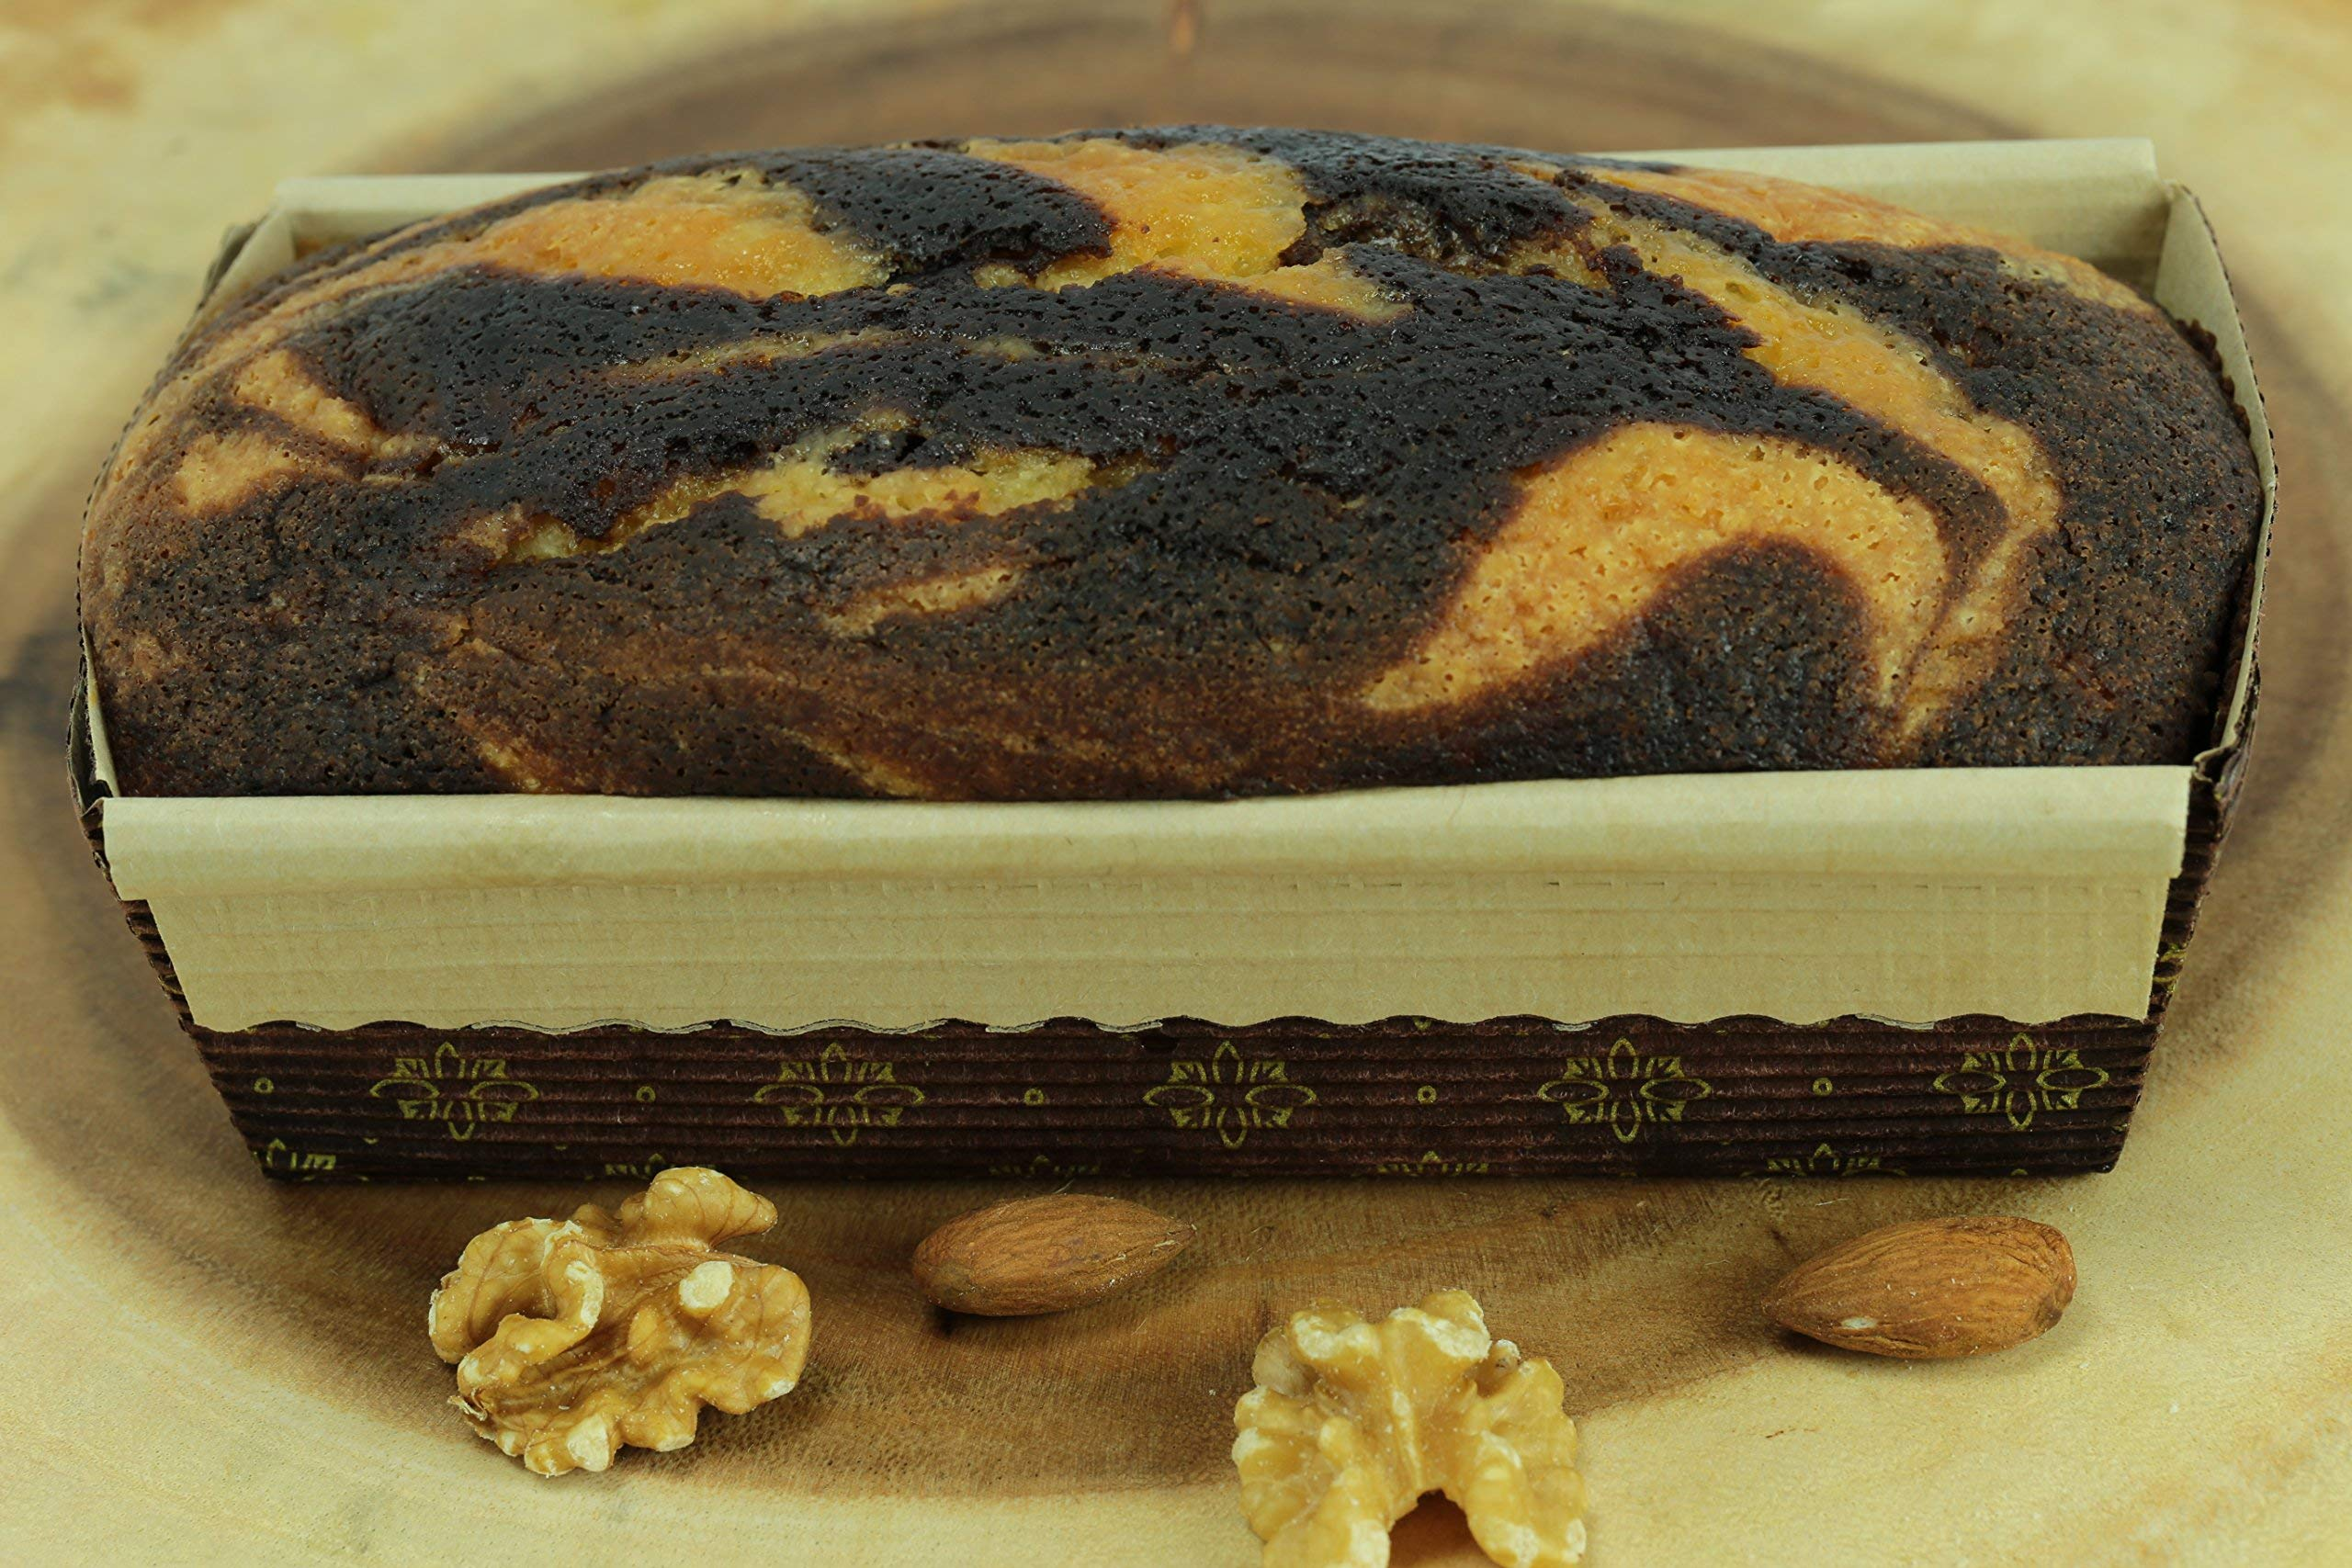 New Premium Paper Baking Loaf Pan, Nonstick, Disposable, All Natural & Eco Friendly, for Chocolate Cake, Banana Bread By Ecobake (100) by Ecobake (Image #3)